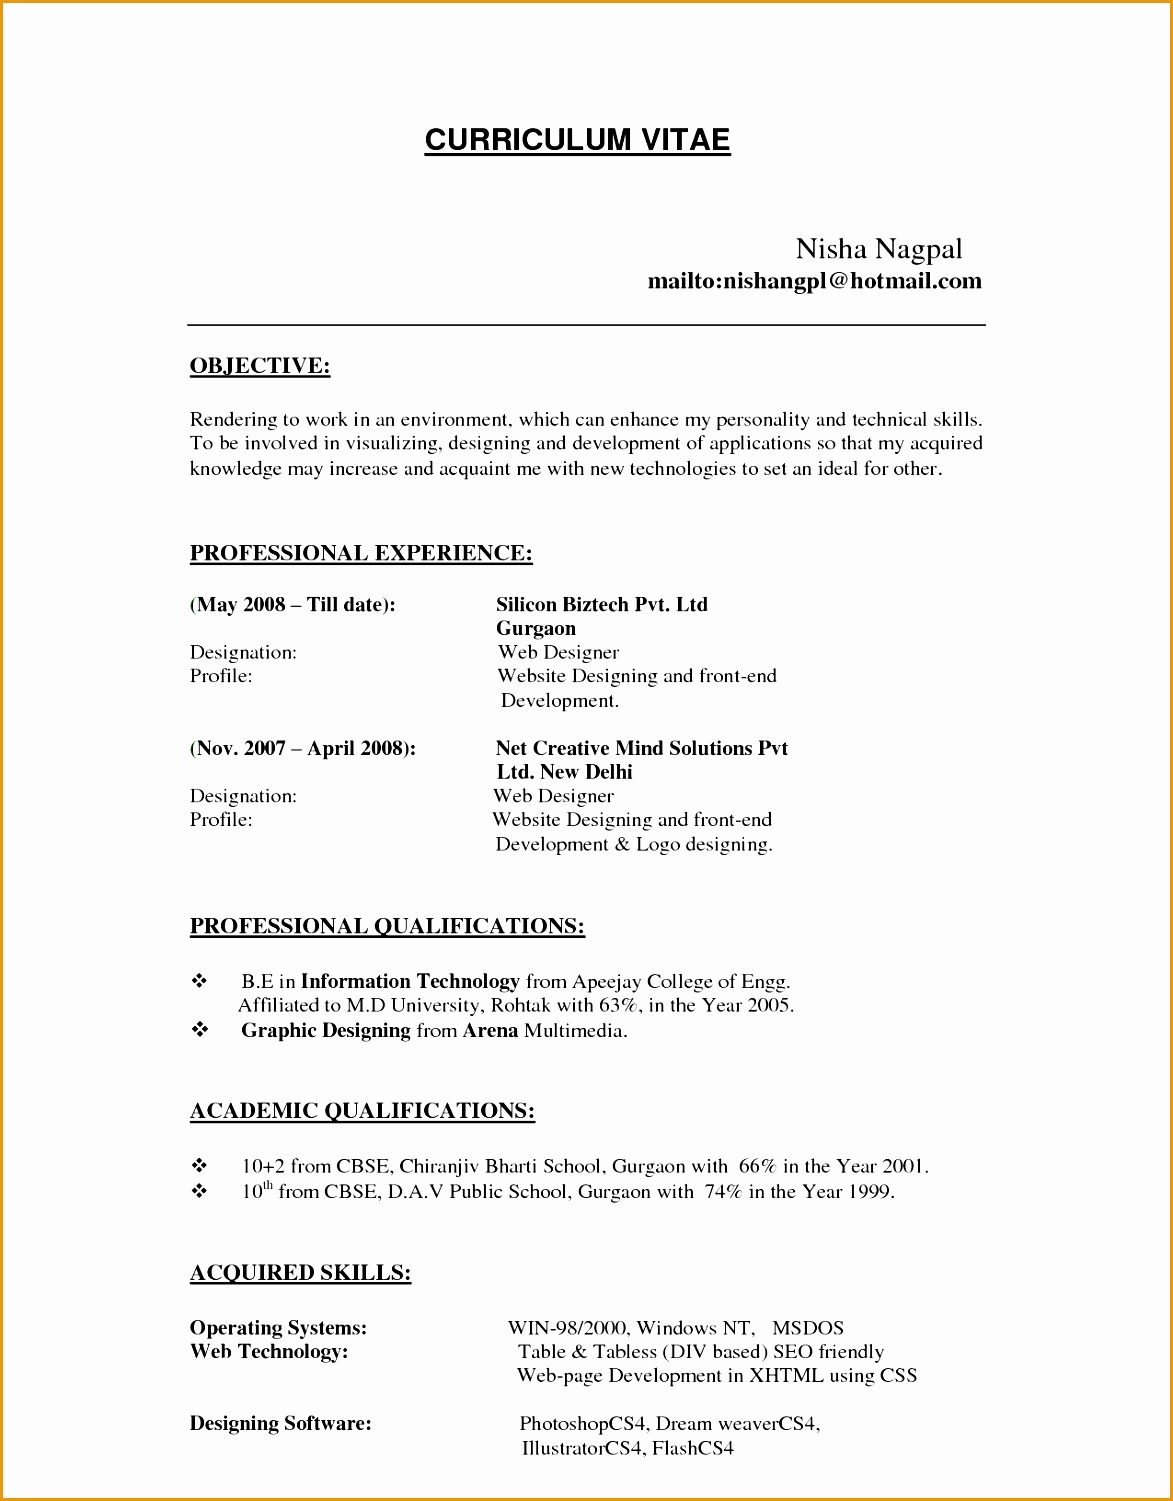 Resume For Hospital Job 7 Bpo Resume Template Free Samples Examples And Format